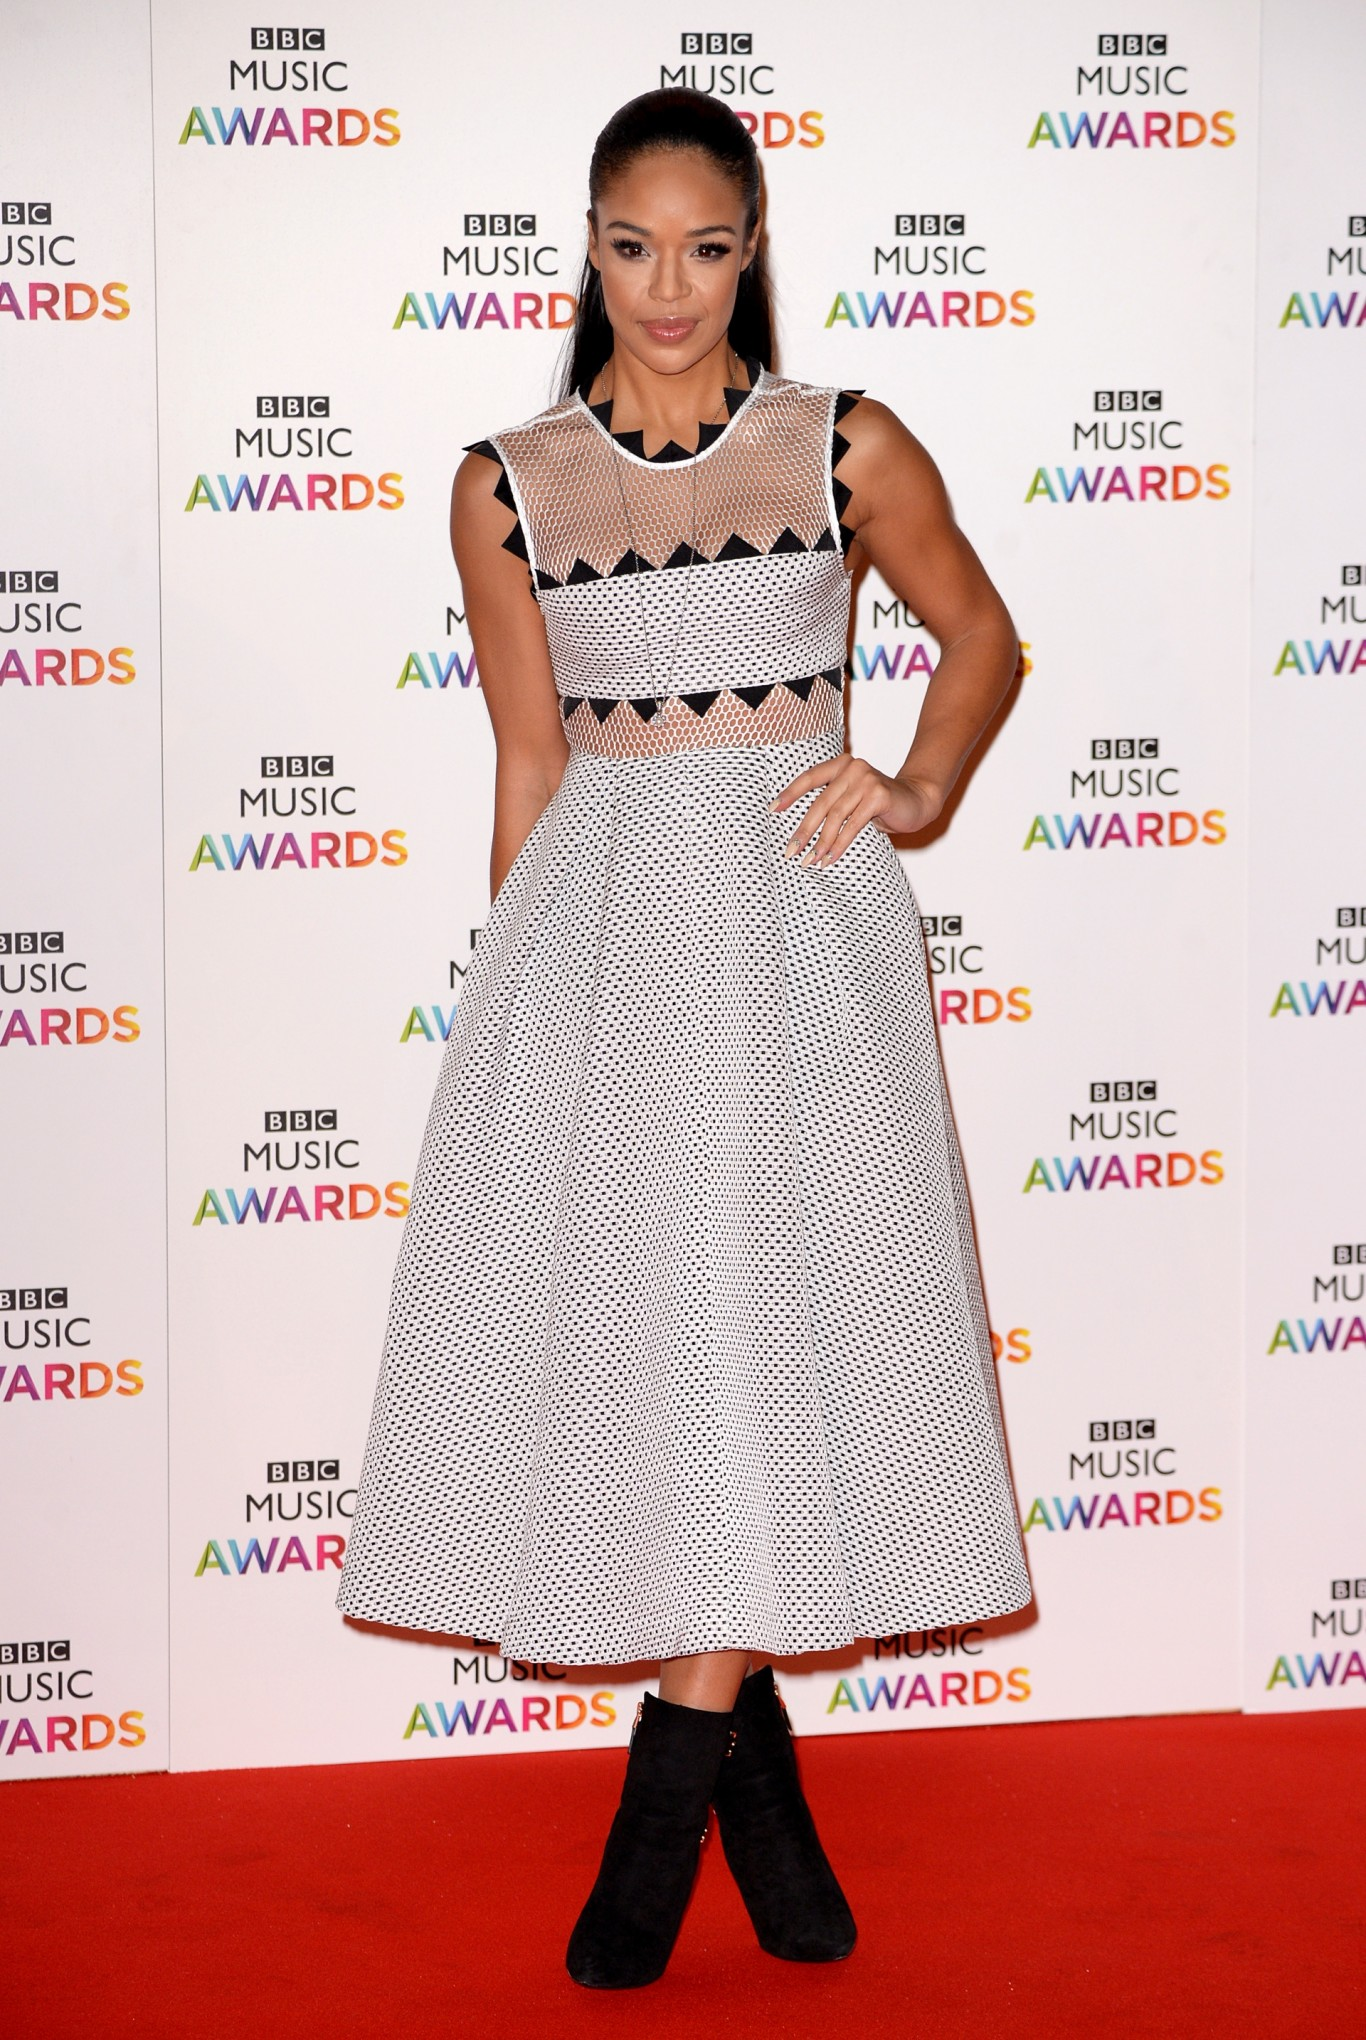 Sarah-Jane -Crawford--bbc-music-awards-london-december-2014